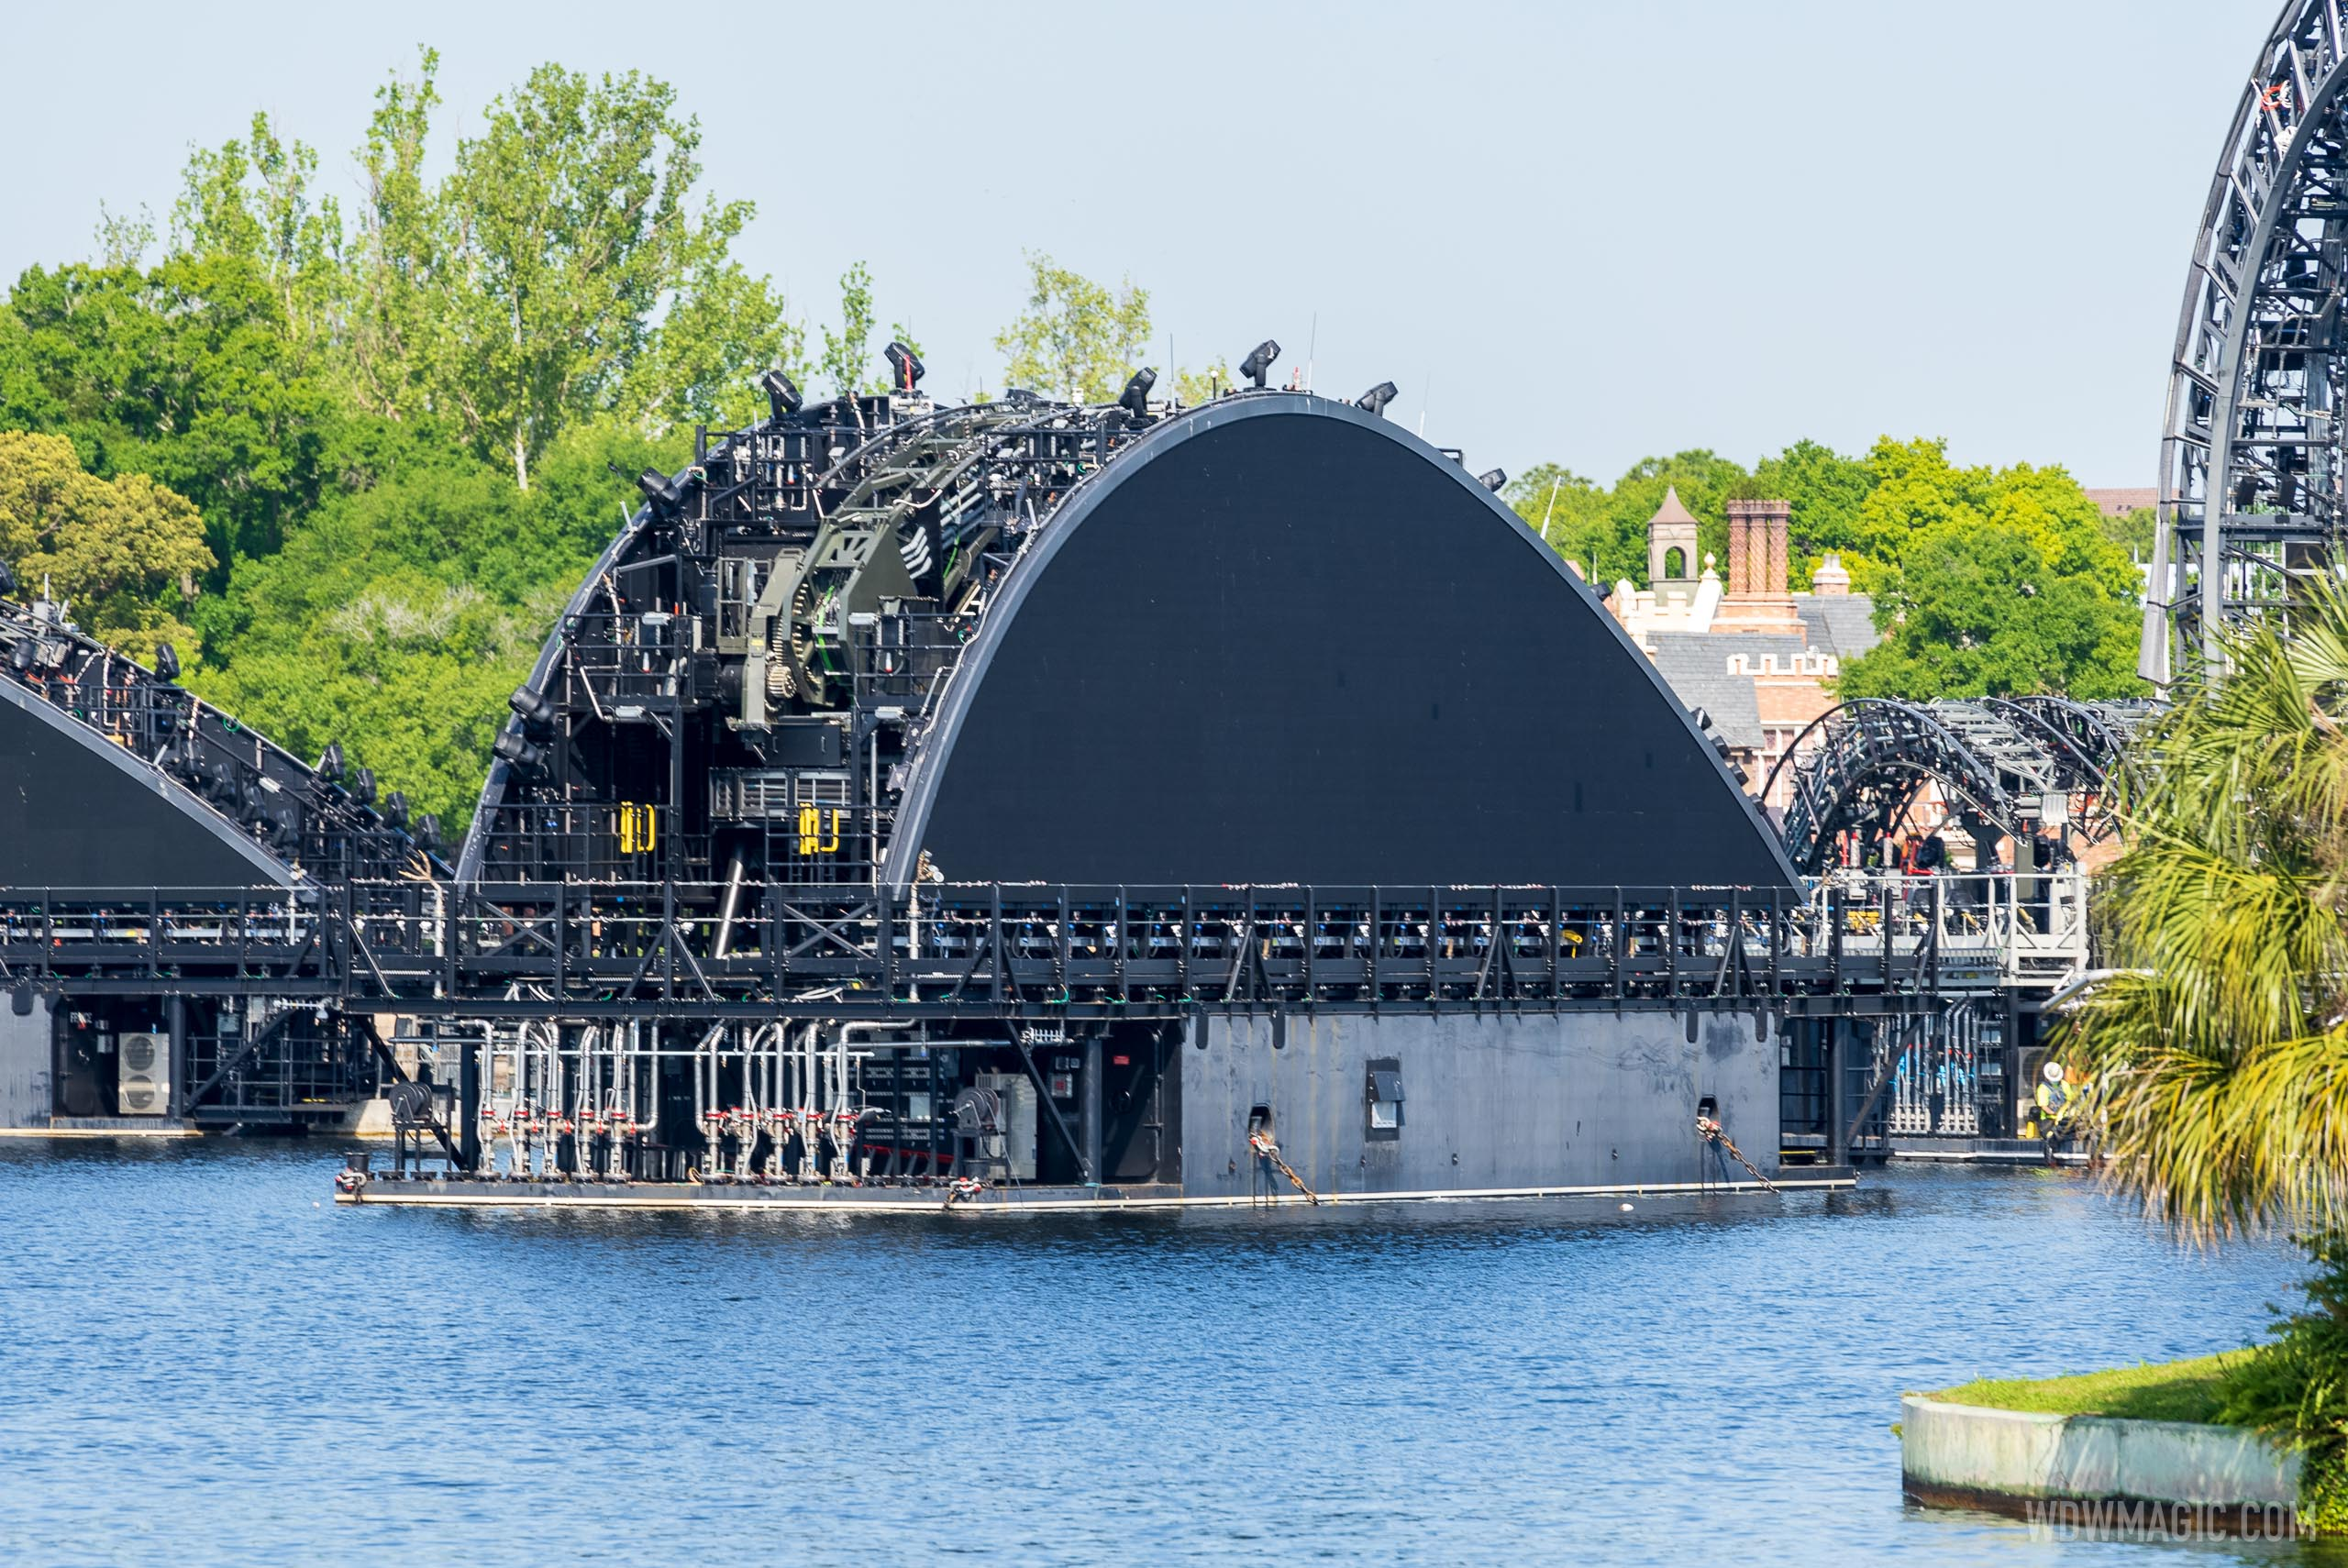 Fourth Harmonious fin barge (Germany) in position